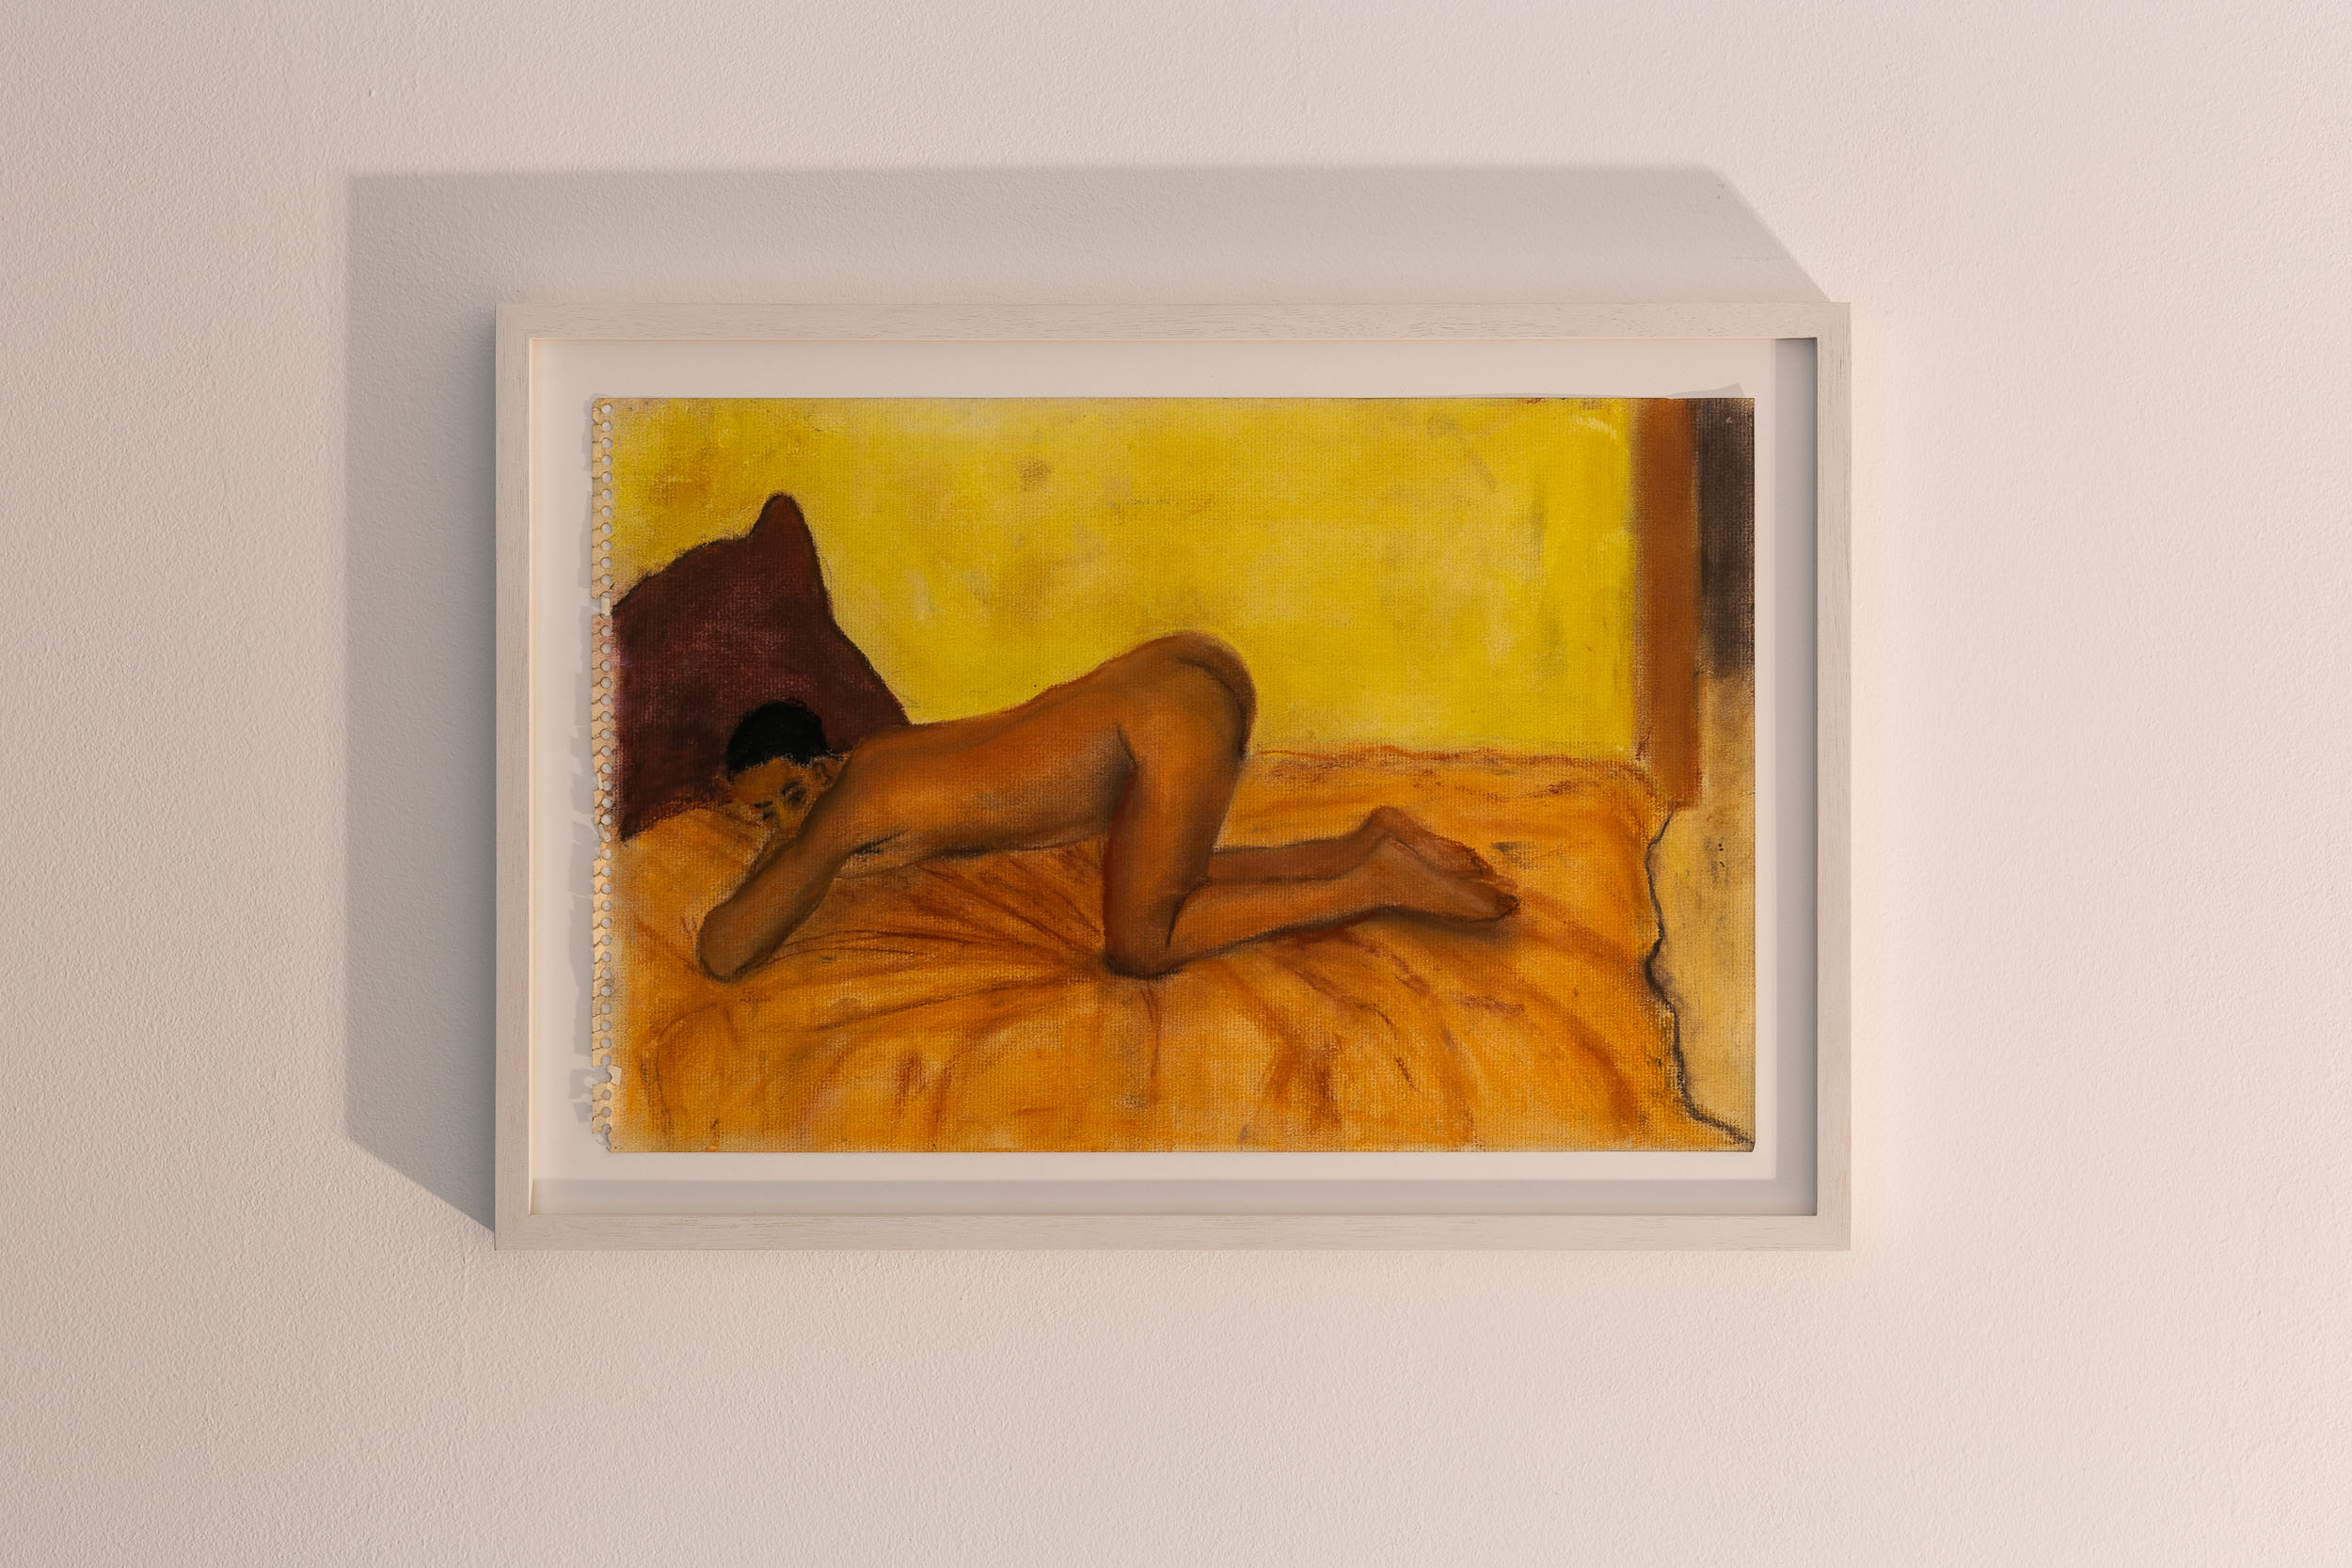 Dieter Hall,  Maroon Cushion,  1998, Pastel on paper, 28 x 42.5 cm / 35 x 50 cm (framed)  Photo: Kilian Bannwart